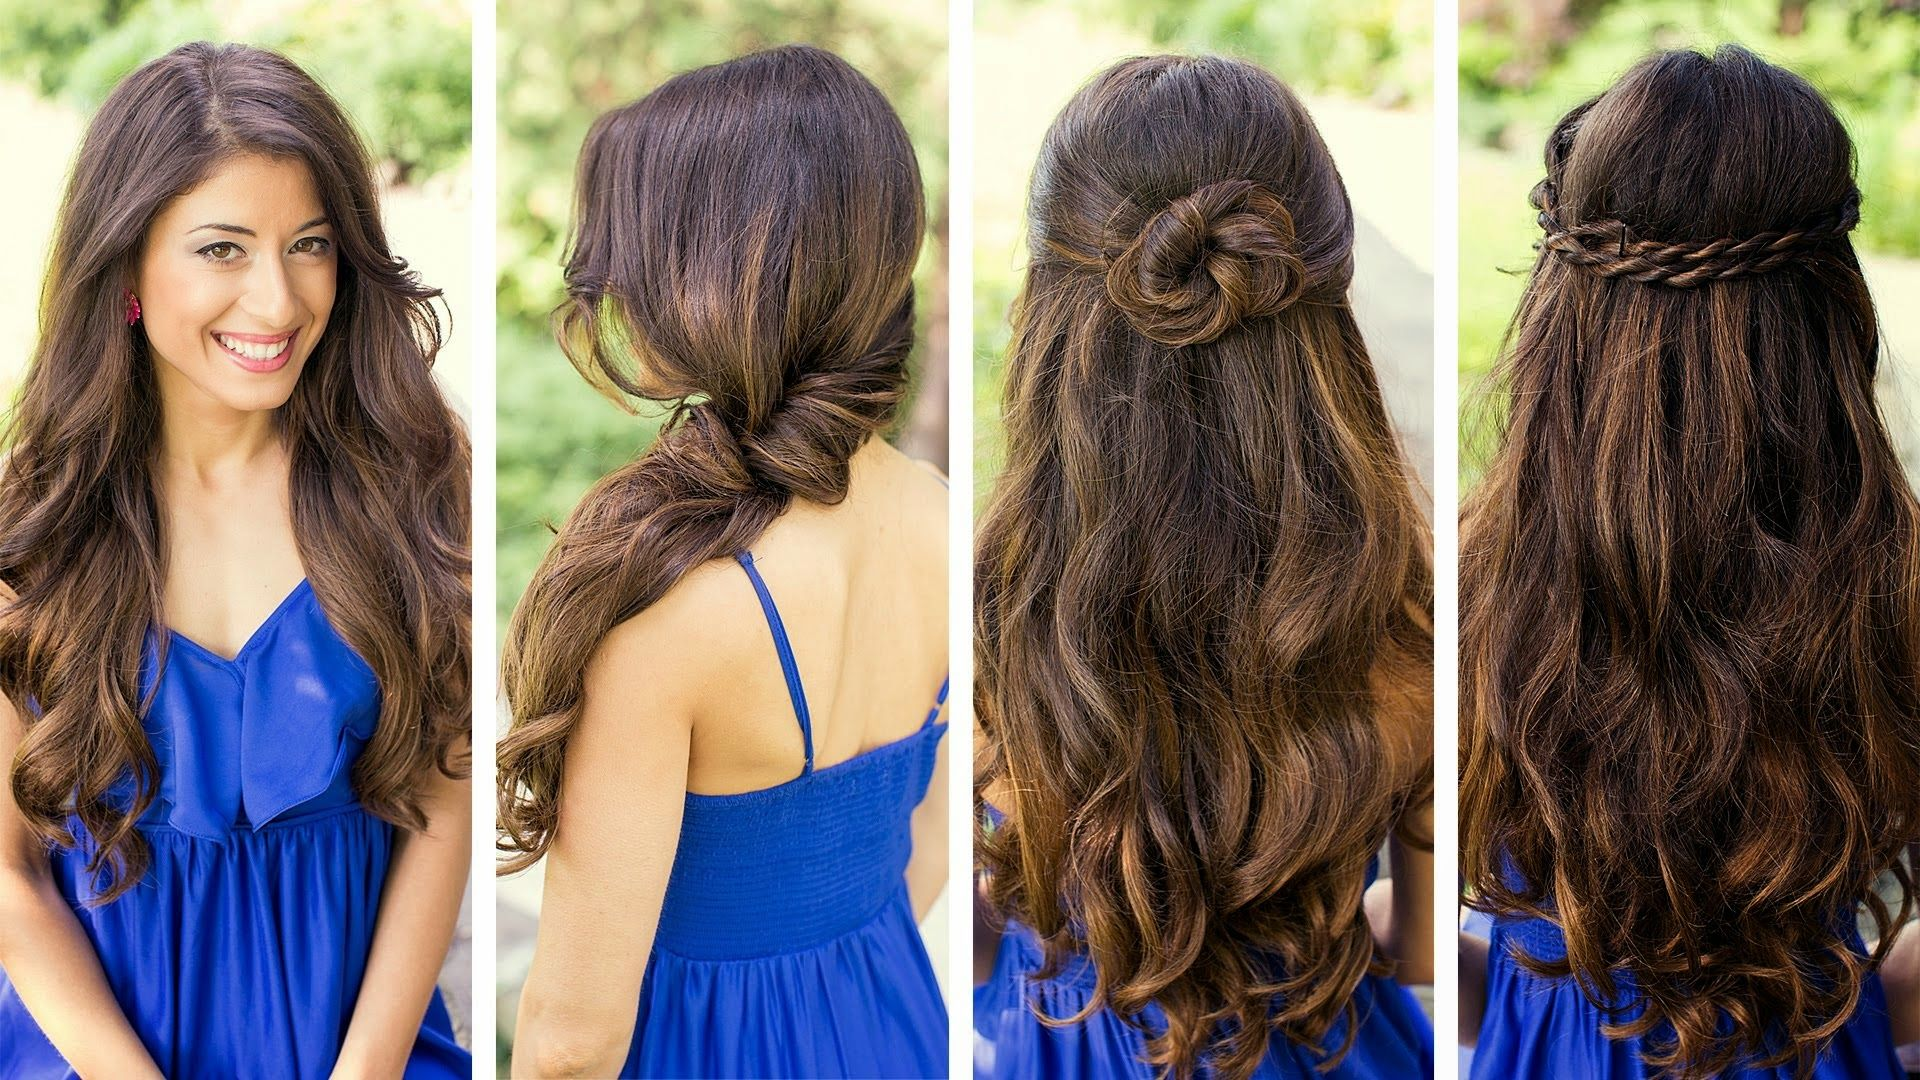 Enjoyable Hairstyle For Long Hair Long Hair And Easy Hairstyles On Pinterest Short Hairstyles Gunalazisus